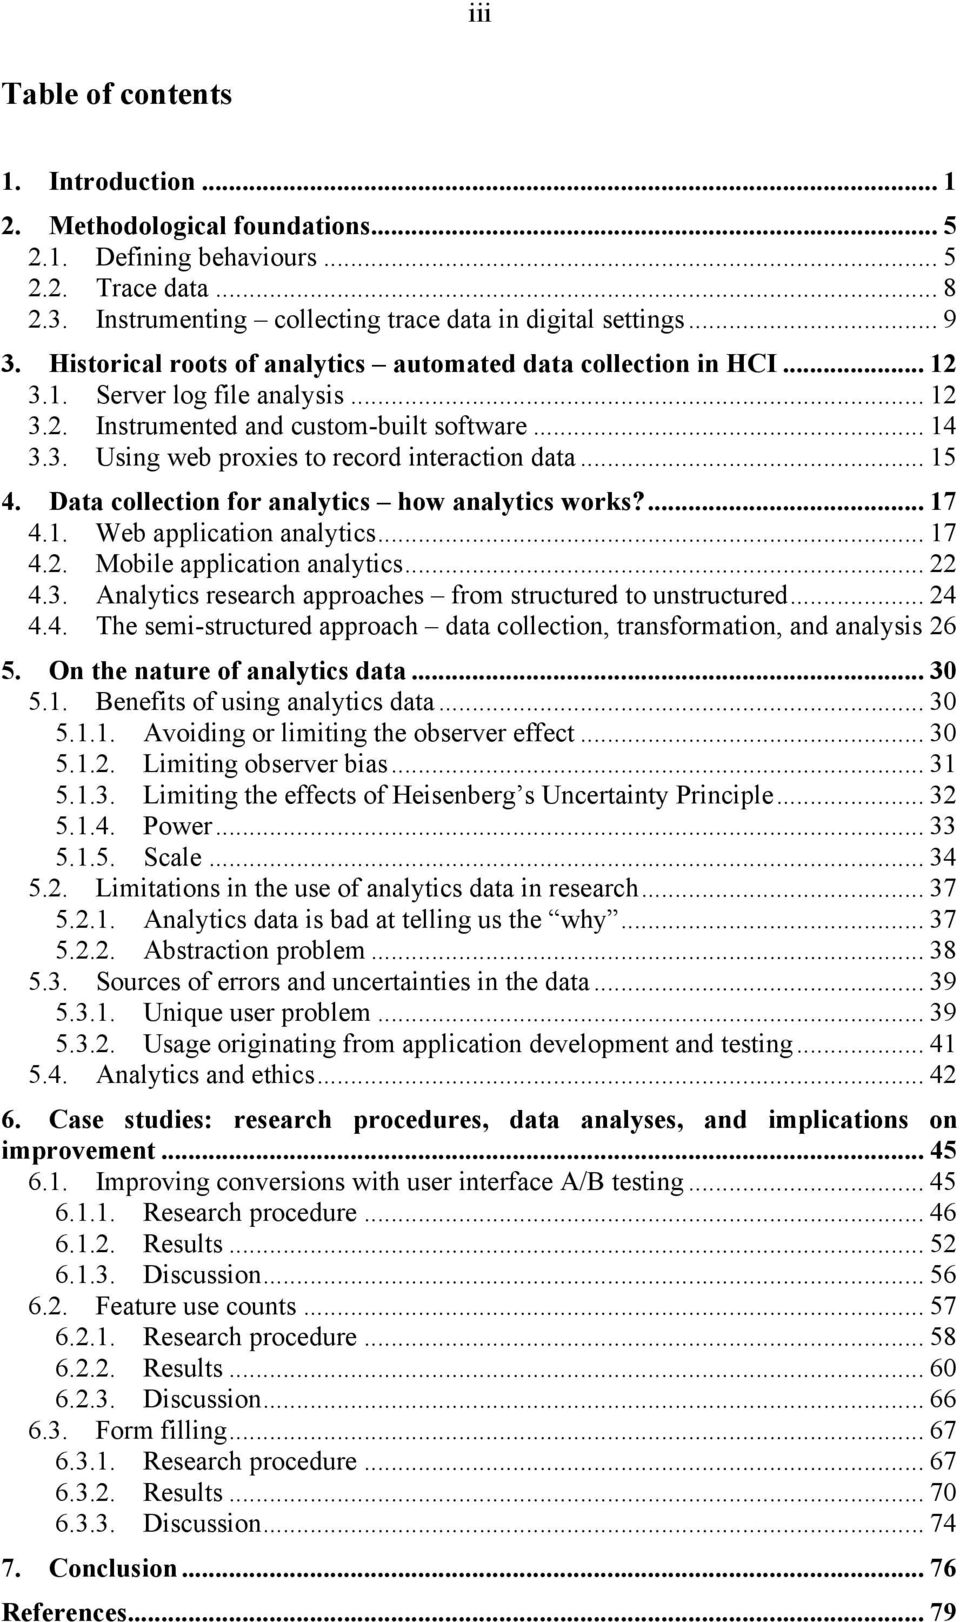 .. 15 4. Data collection for analytics how analytics works?... 17 4.1. Web application analytics... 17 4.2. Mobile application analytics... 22 4.3.